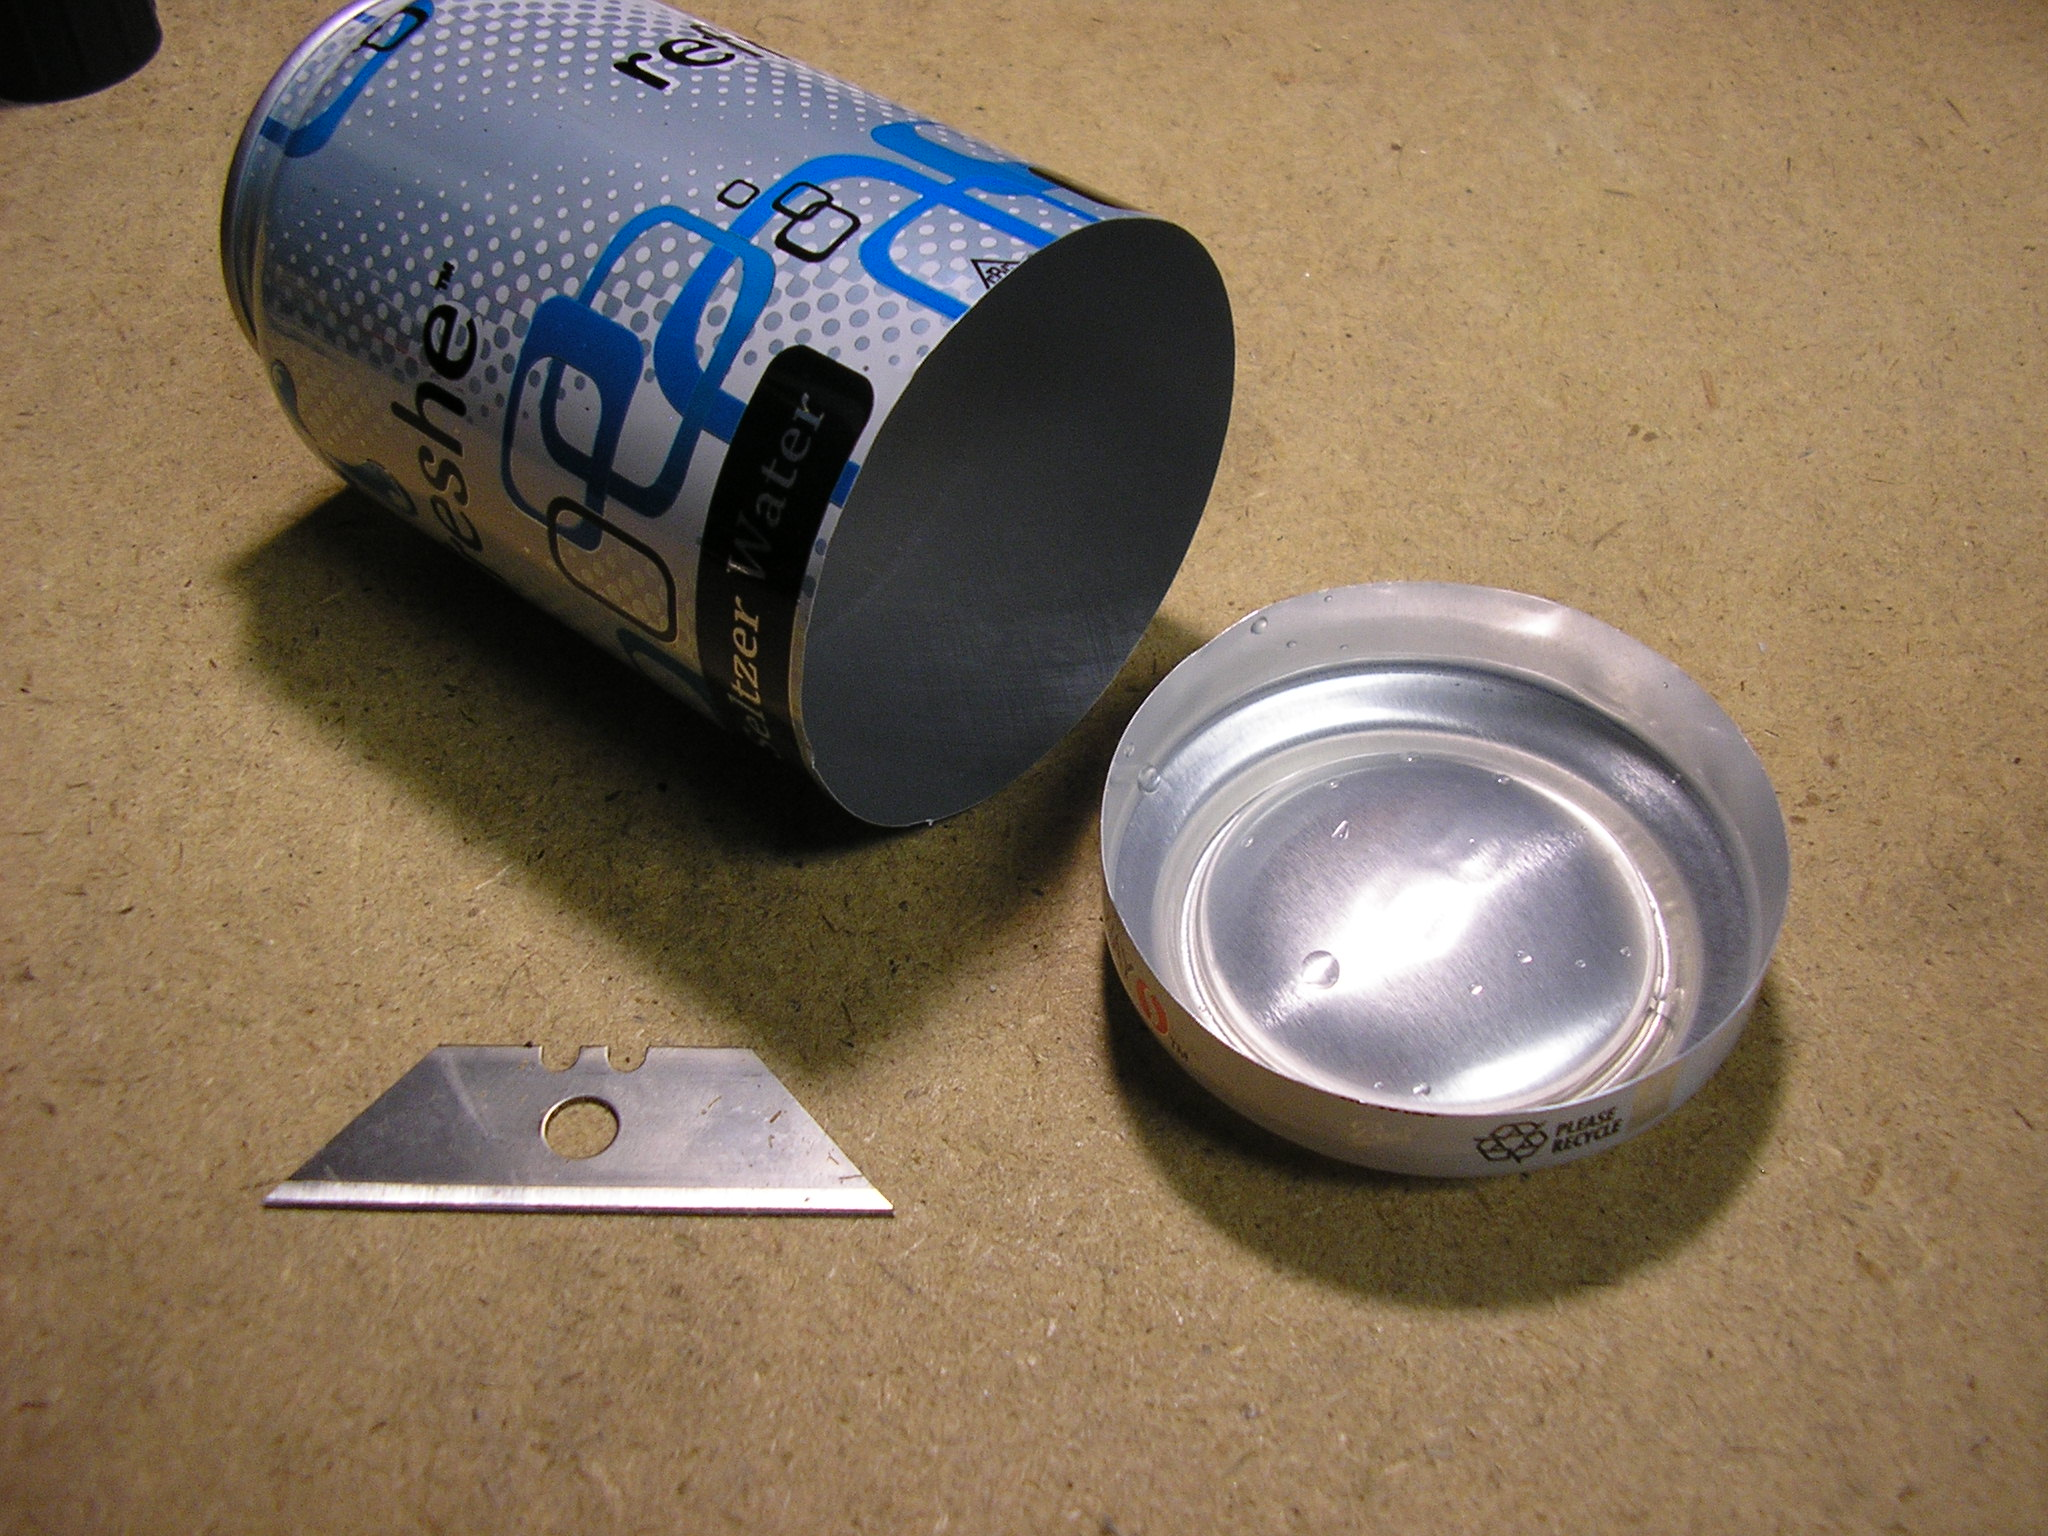 Alcohol Stove top/bottom parts removed from cans